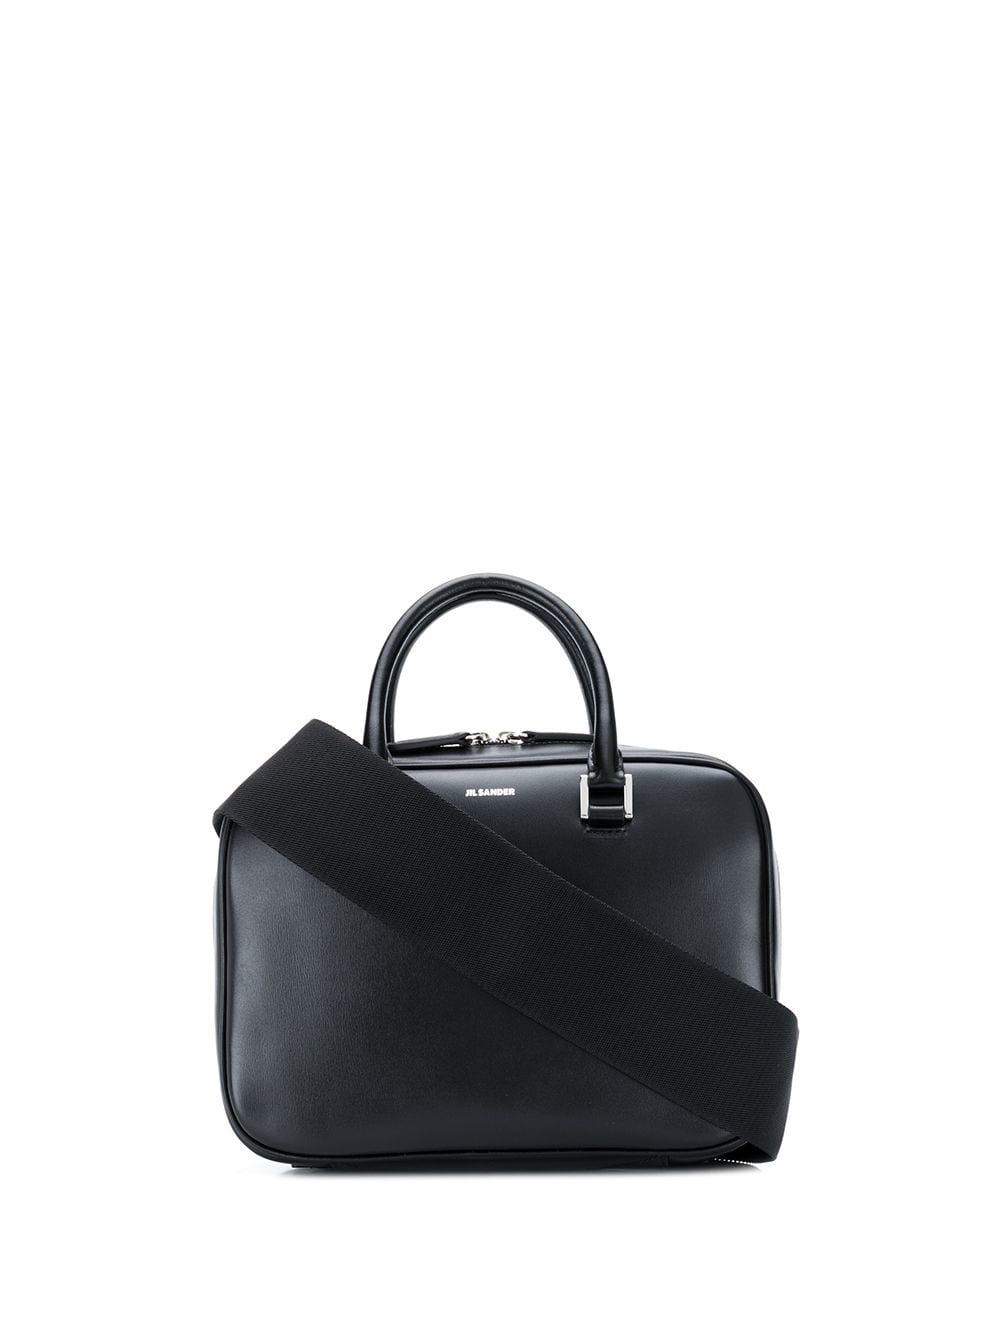 59e515f08e5b Black calf leather small J-Vision tote bag from Jil Sander featuring round  top handles